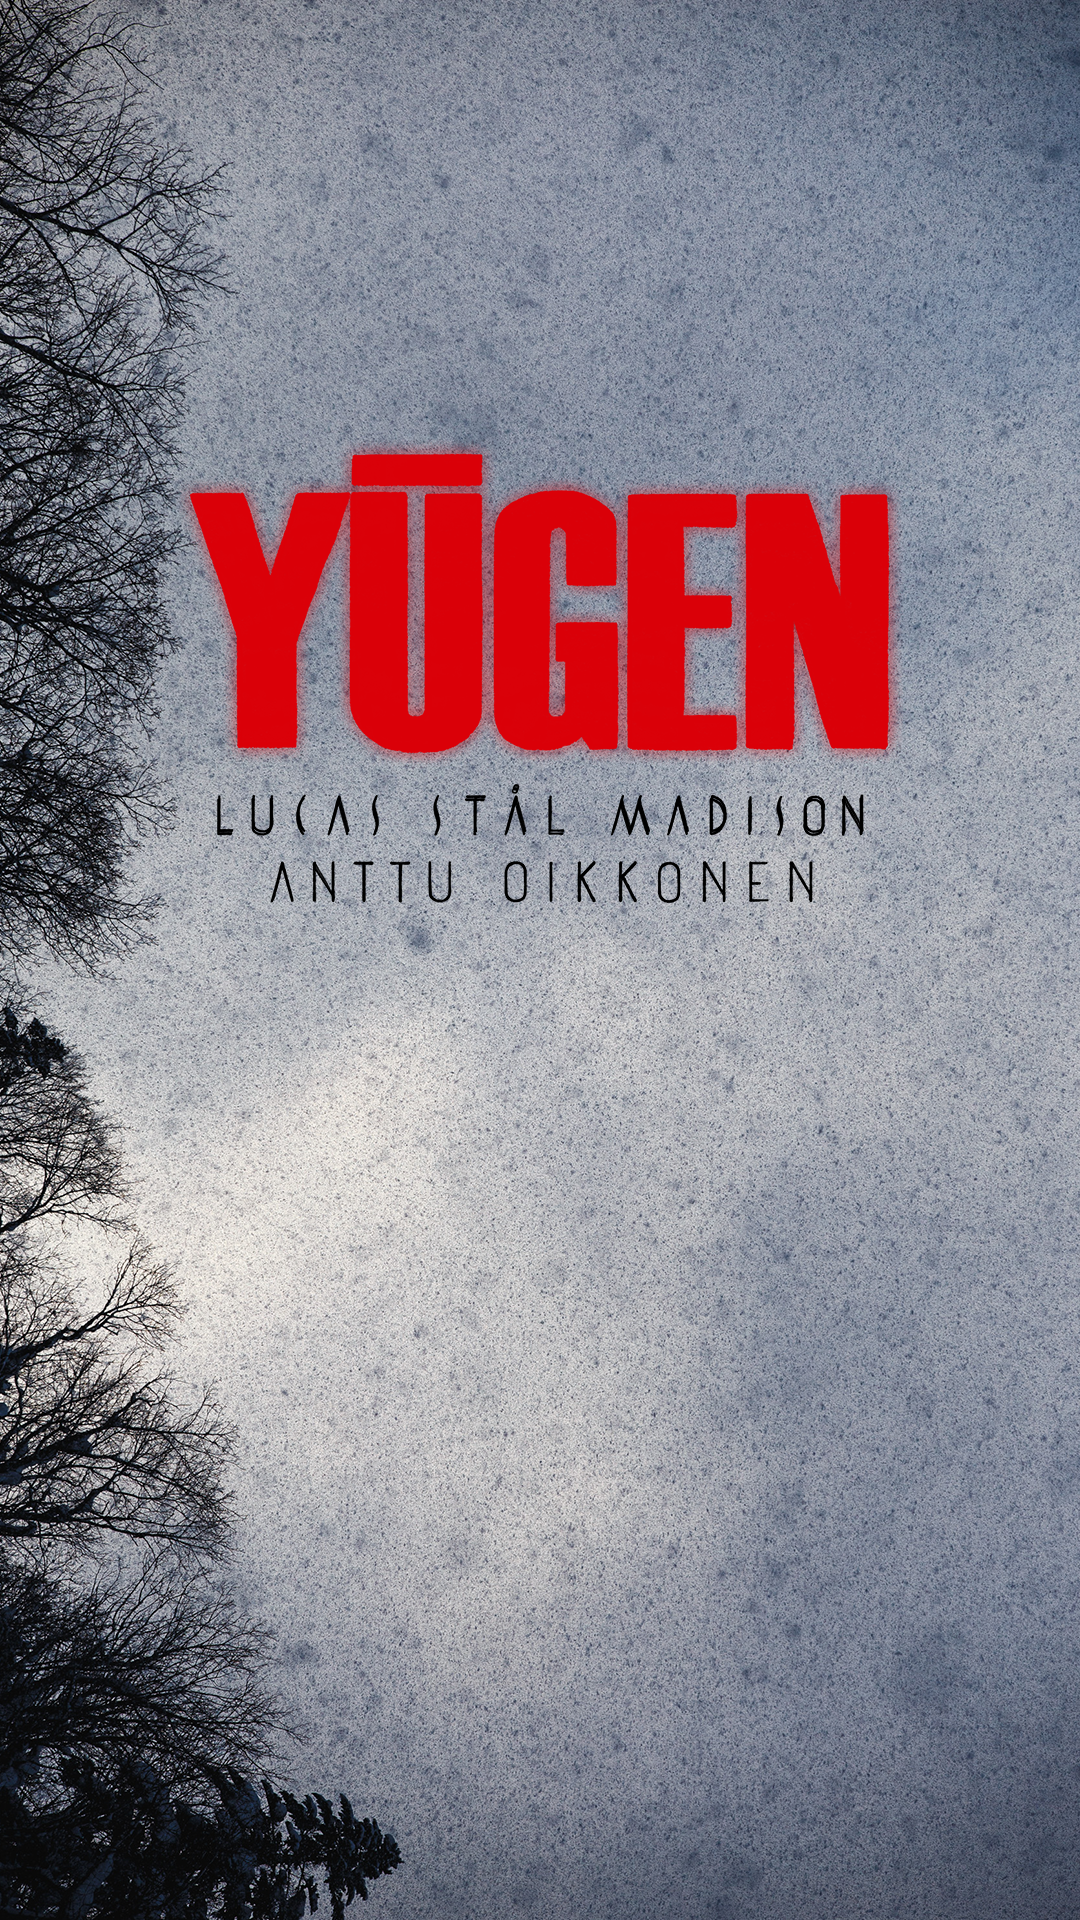 Yūgen_LSM_story_photo_1.png